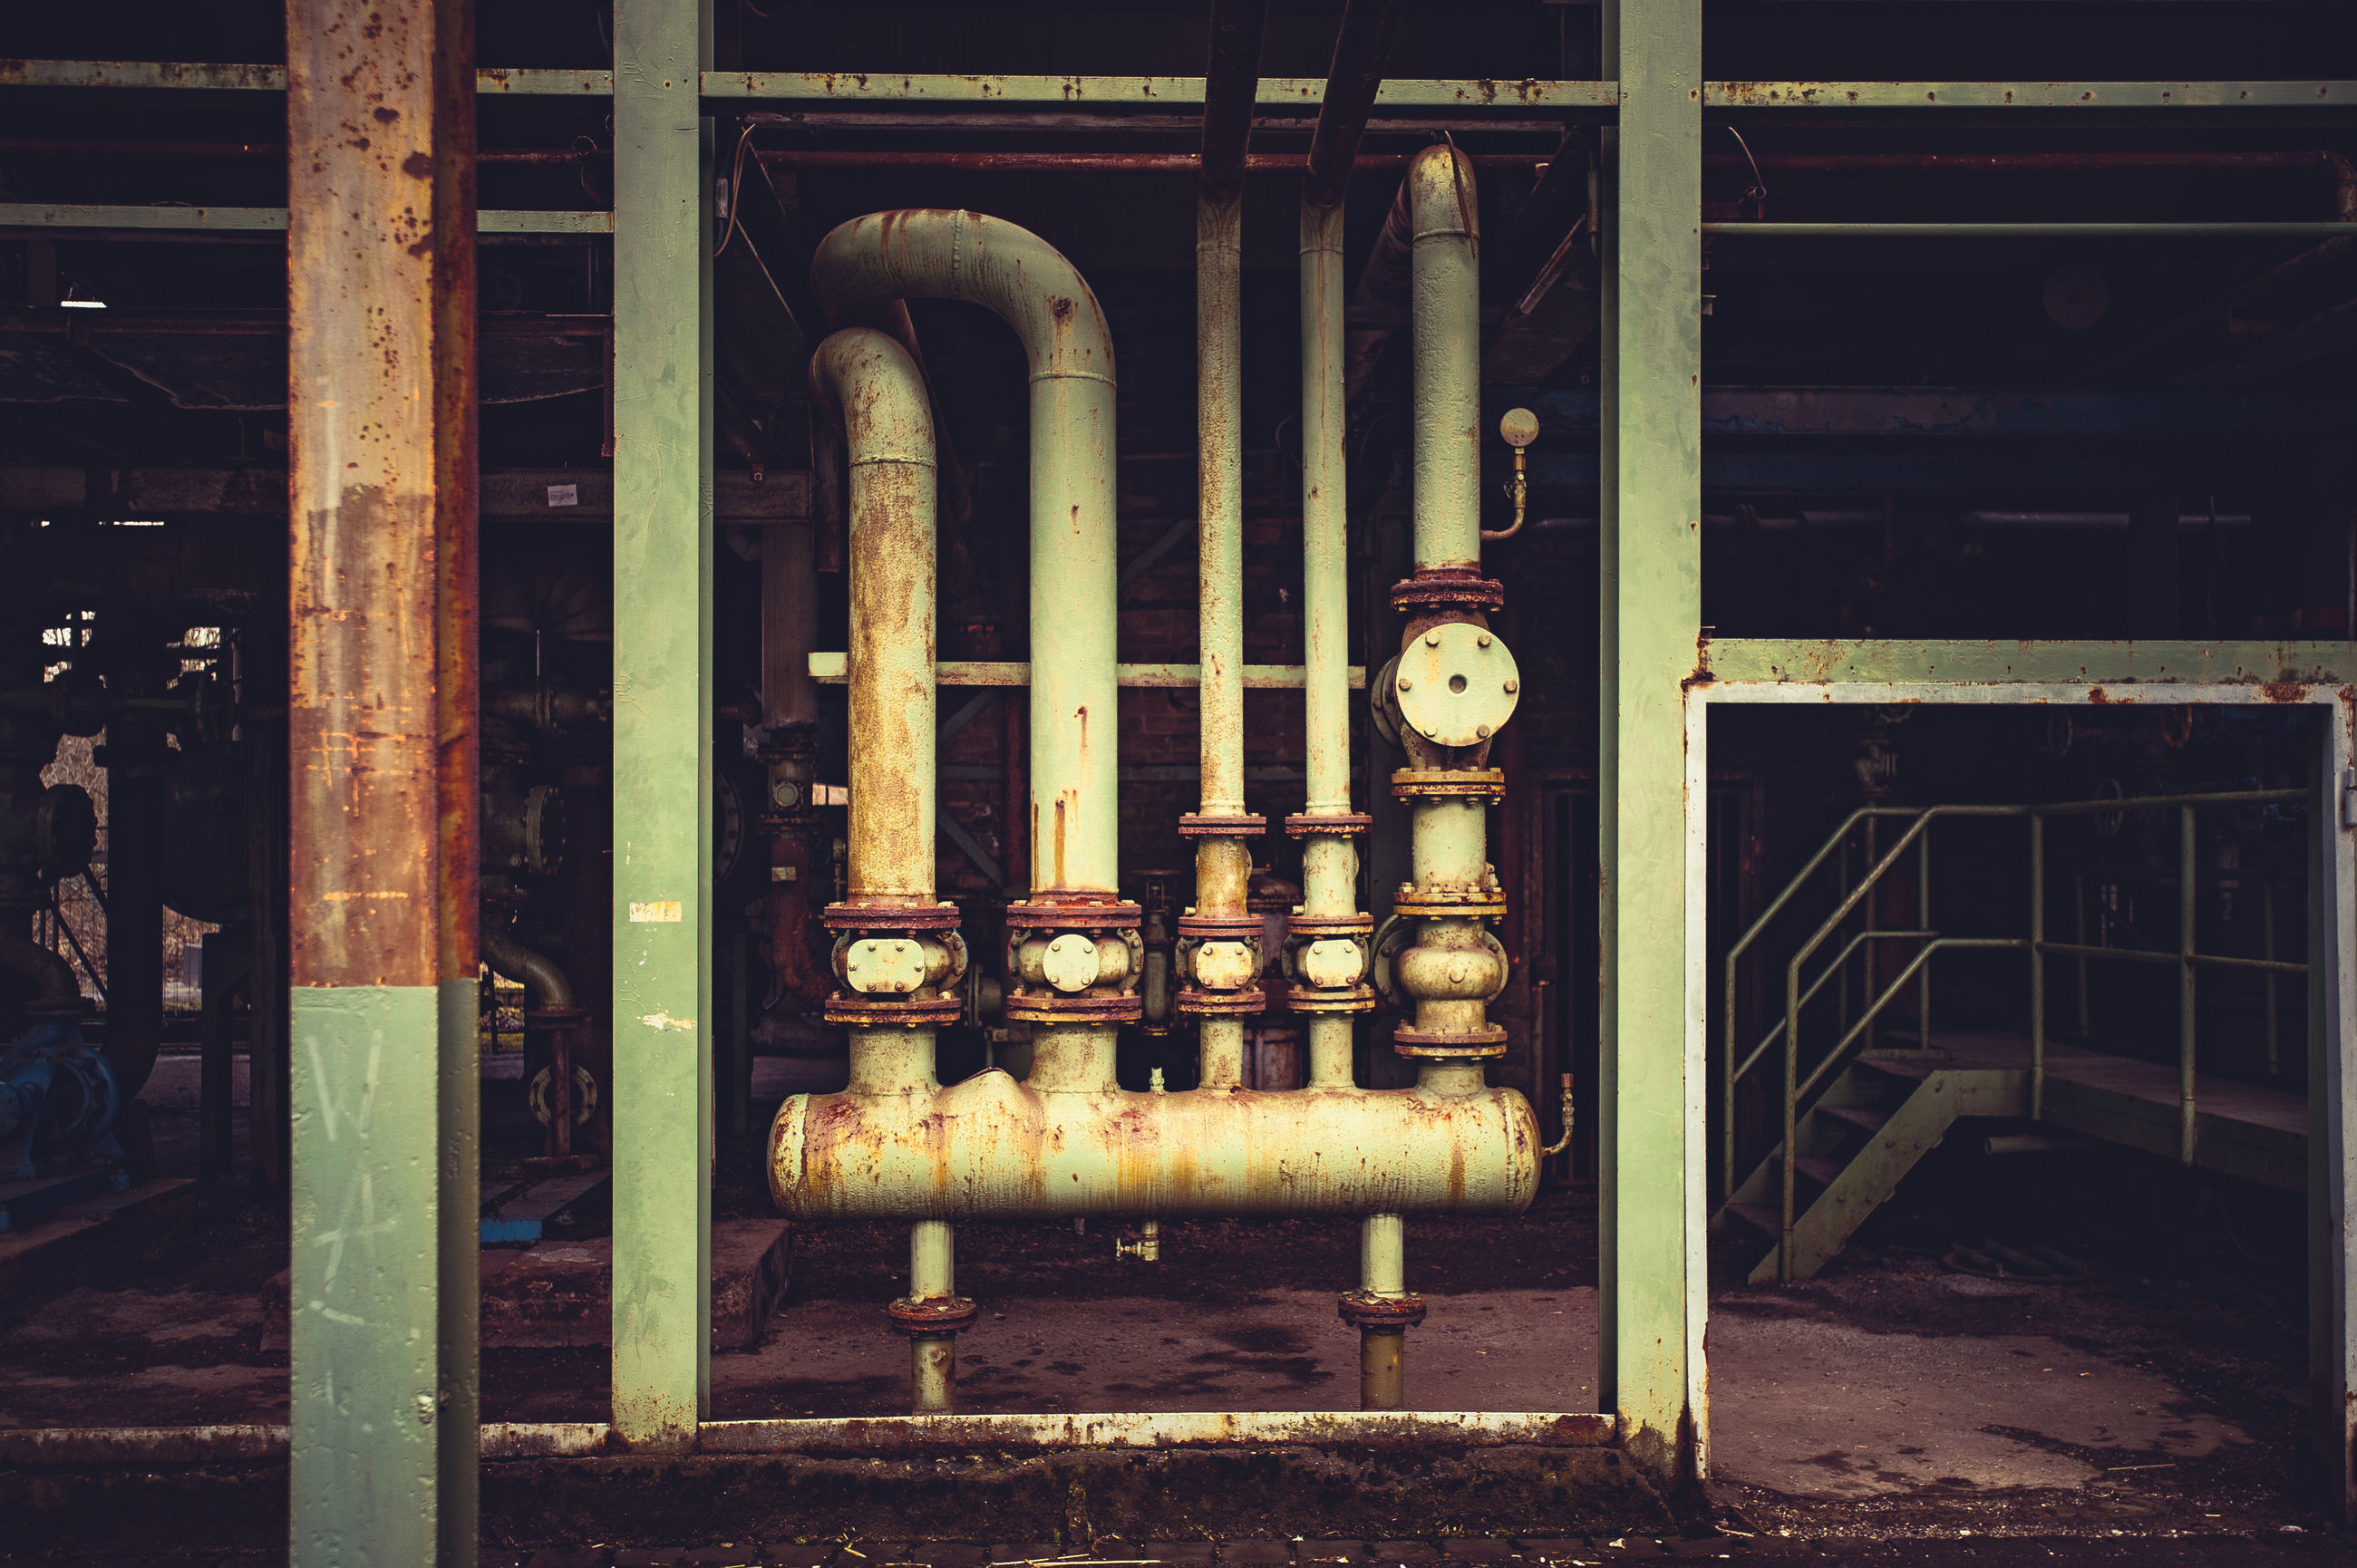 Old rusty metallic pipes in industry